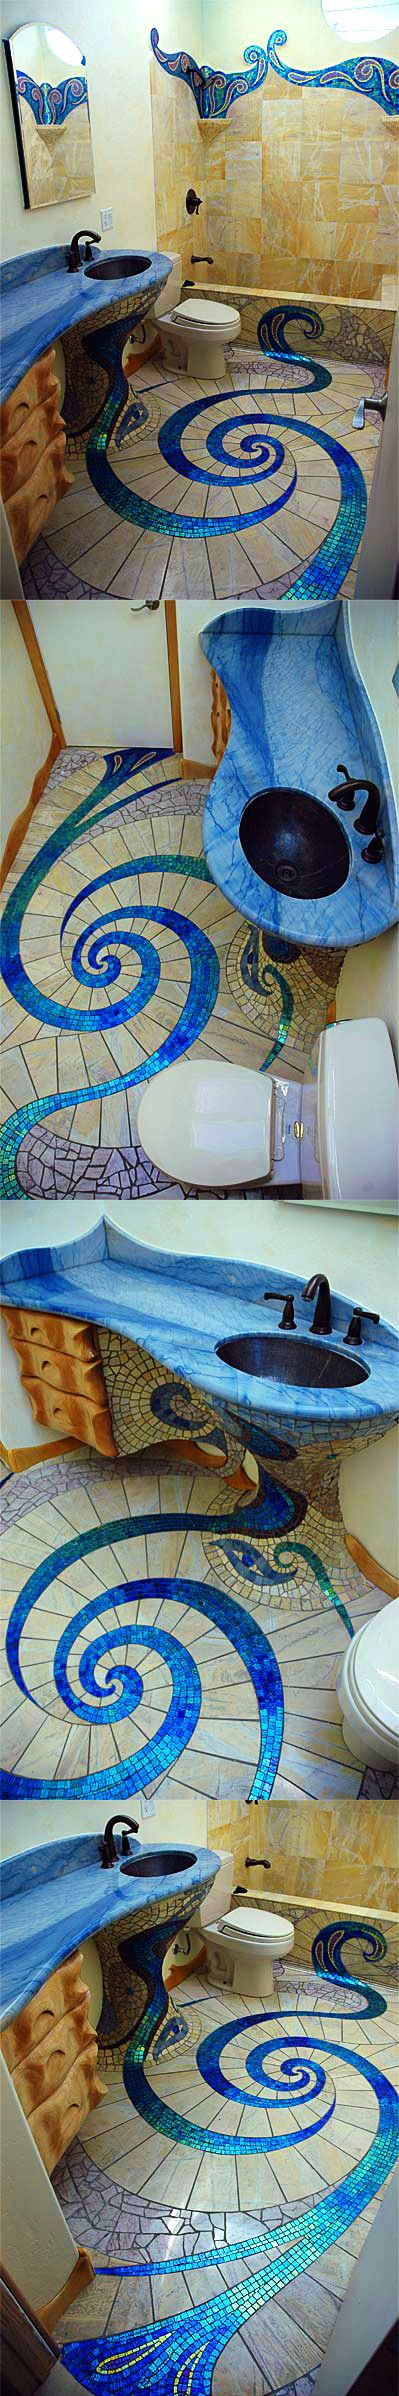 Awesome bathroom floor design.